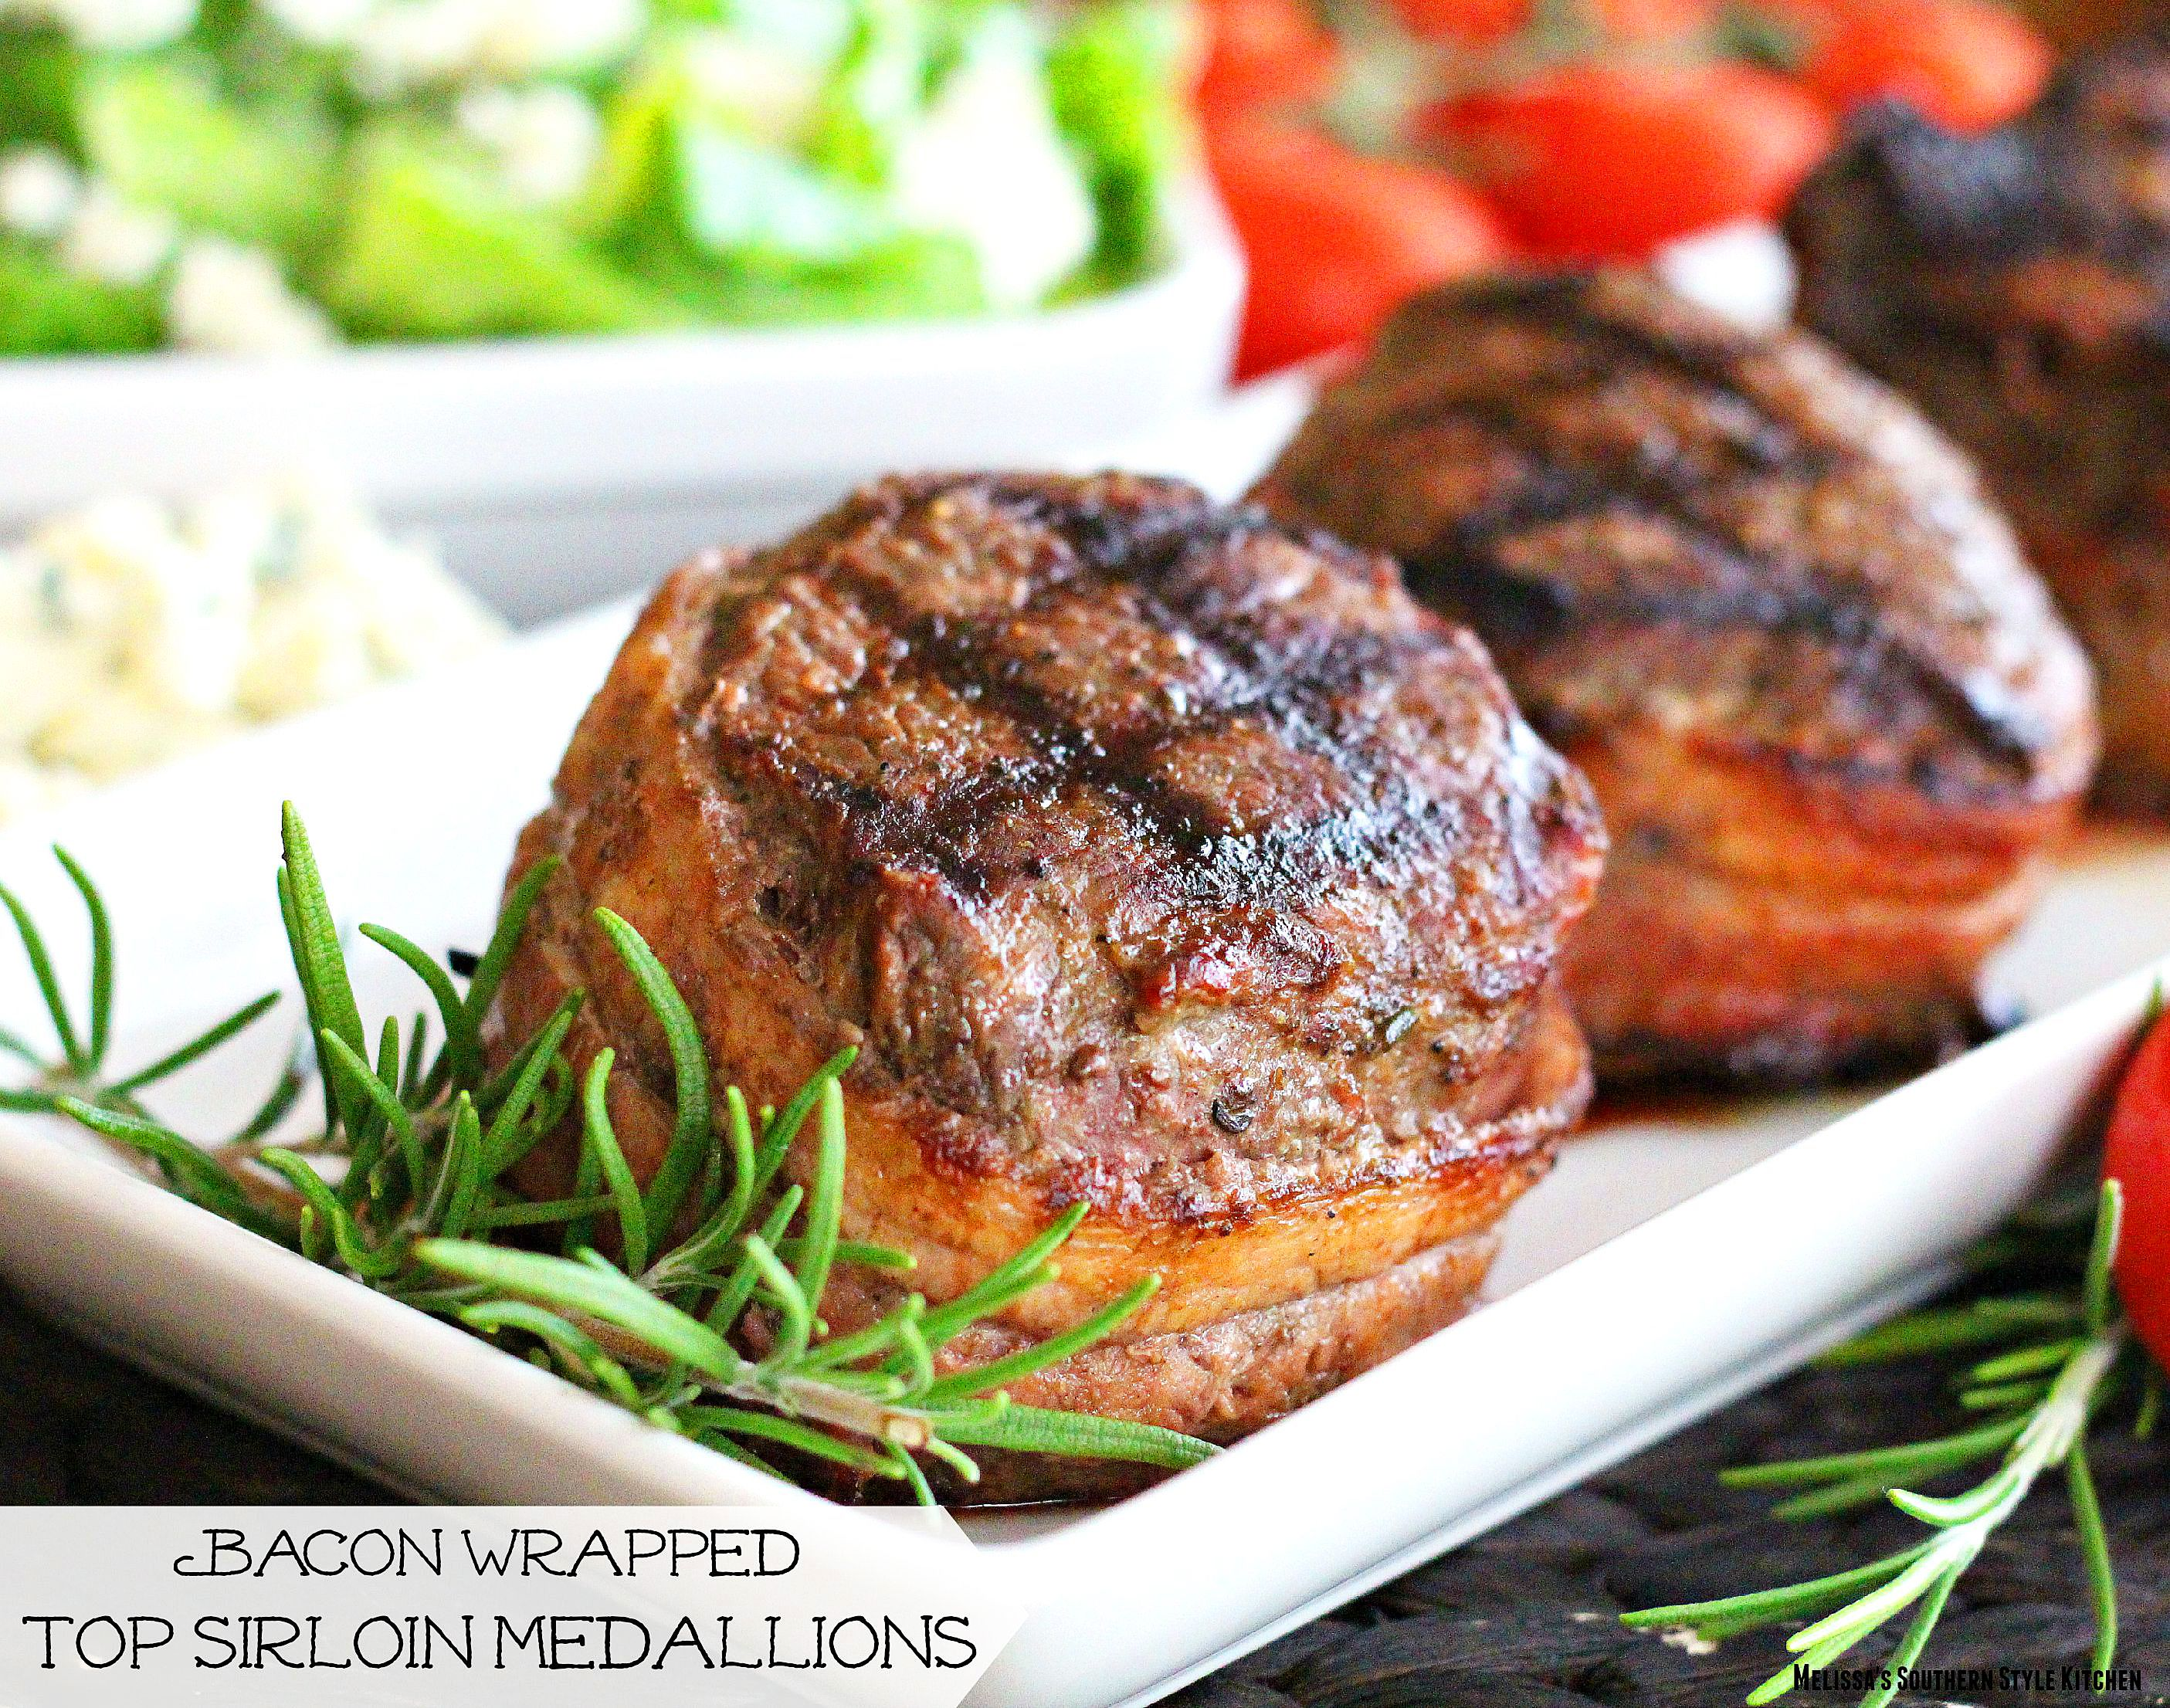 Bacon wrapped top sirloin medallions grilling is a year